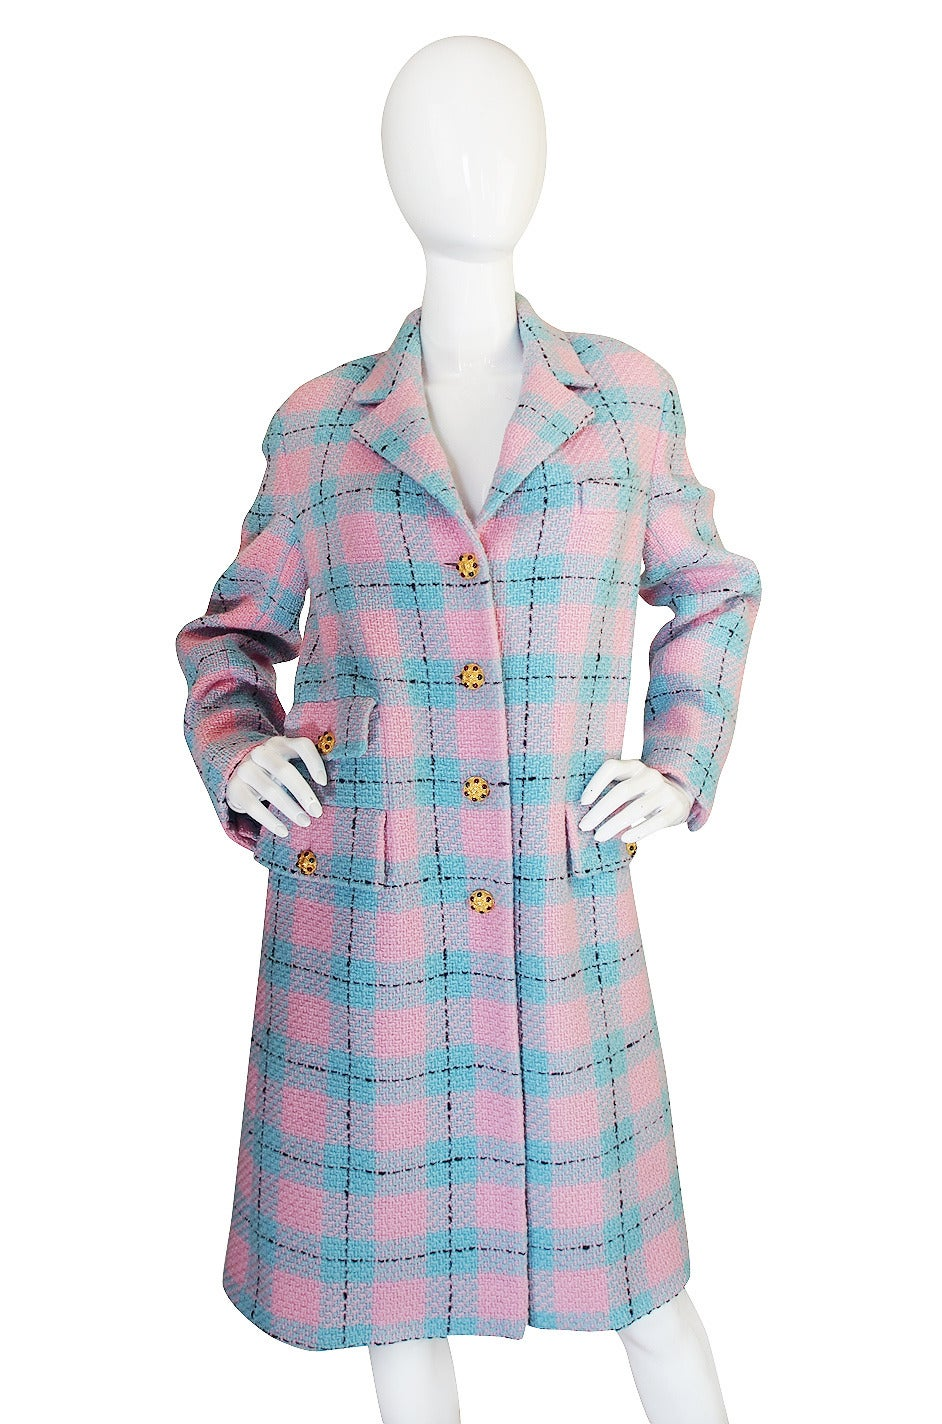 Chanel 96A Pastel Runway Coat with Cabochon Buttons 3